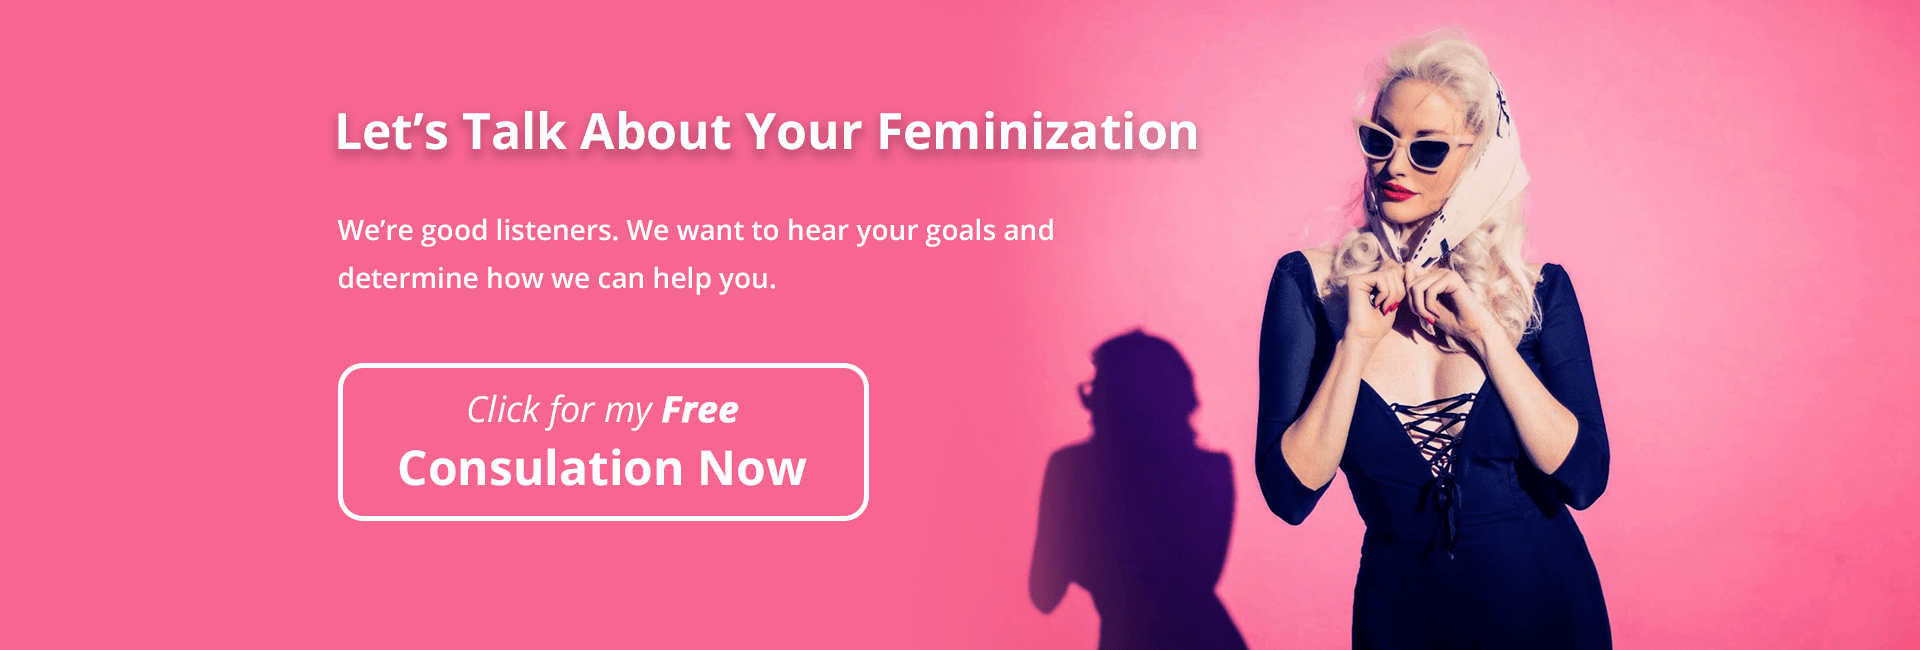 Let's talk about your Feminization.